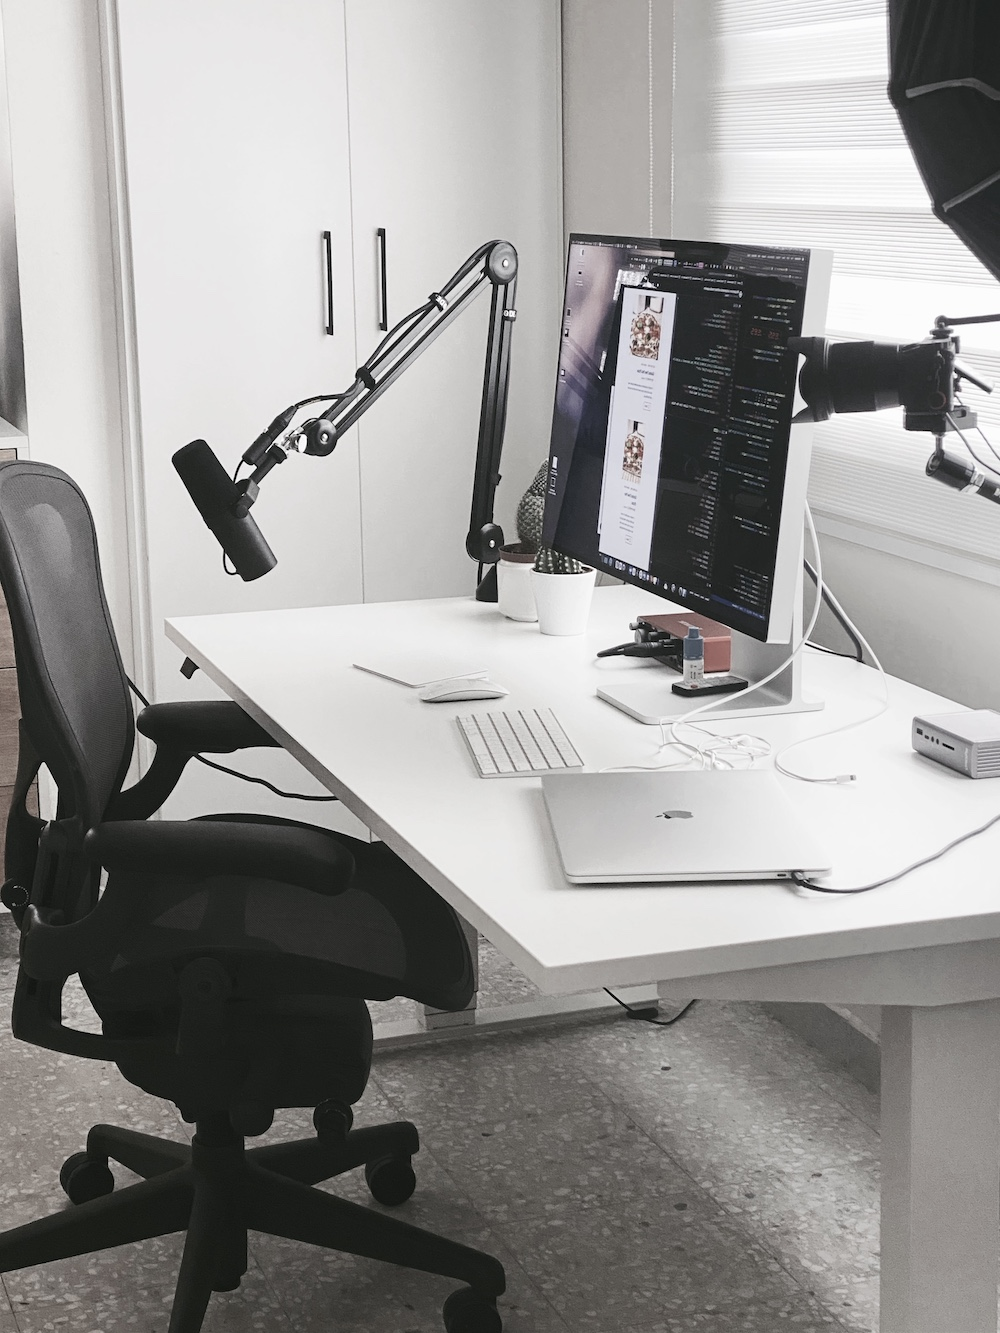 My desk in 2021: a minimalist easthestic including a Macbook, a Pro Display, a sit-to-stand desk, an ergonomic chair, and a professional camera and microphone setup.